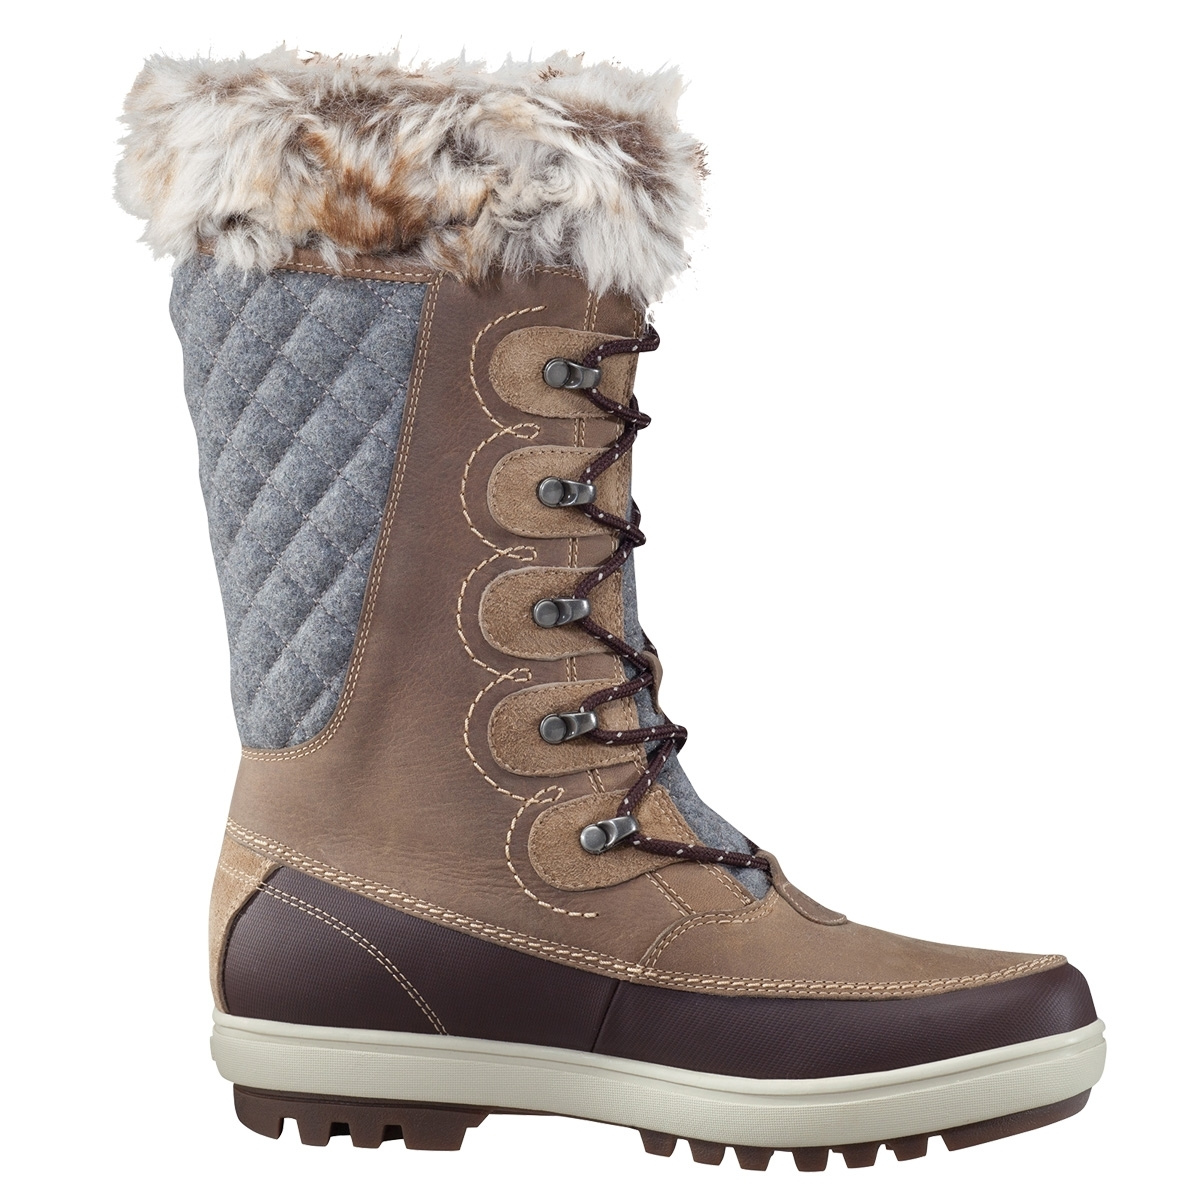 What to get a mountain man for christmas